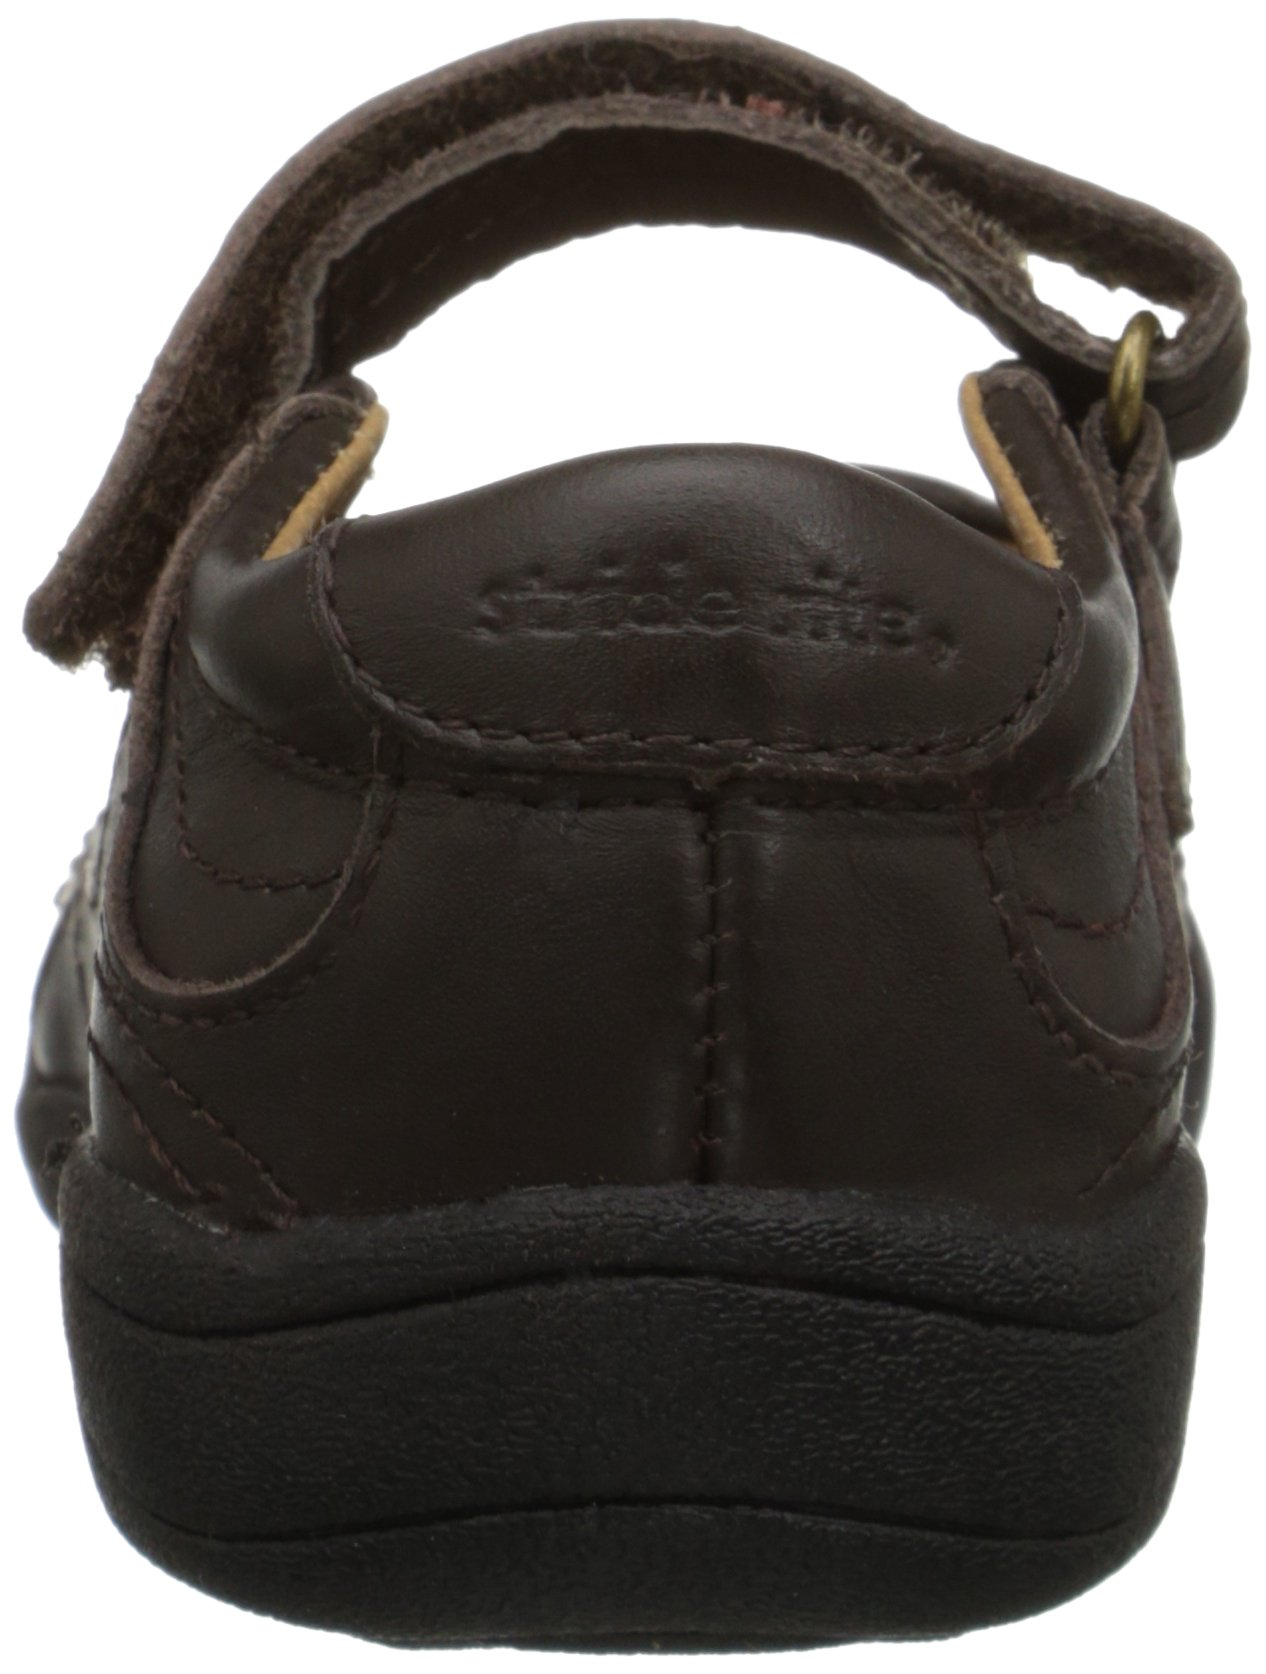 Stride Rite Claire Mary Jane (Toddler/Little Kid/Big Kid),Brown,13 M US Little Kid by Stride Rite (Image #2)